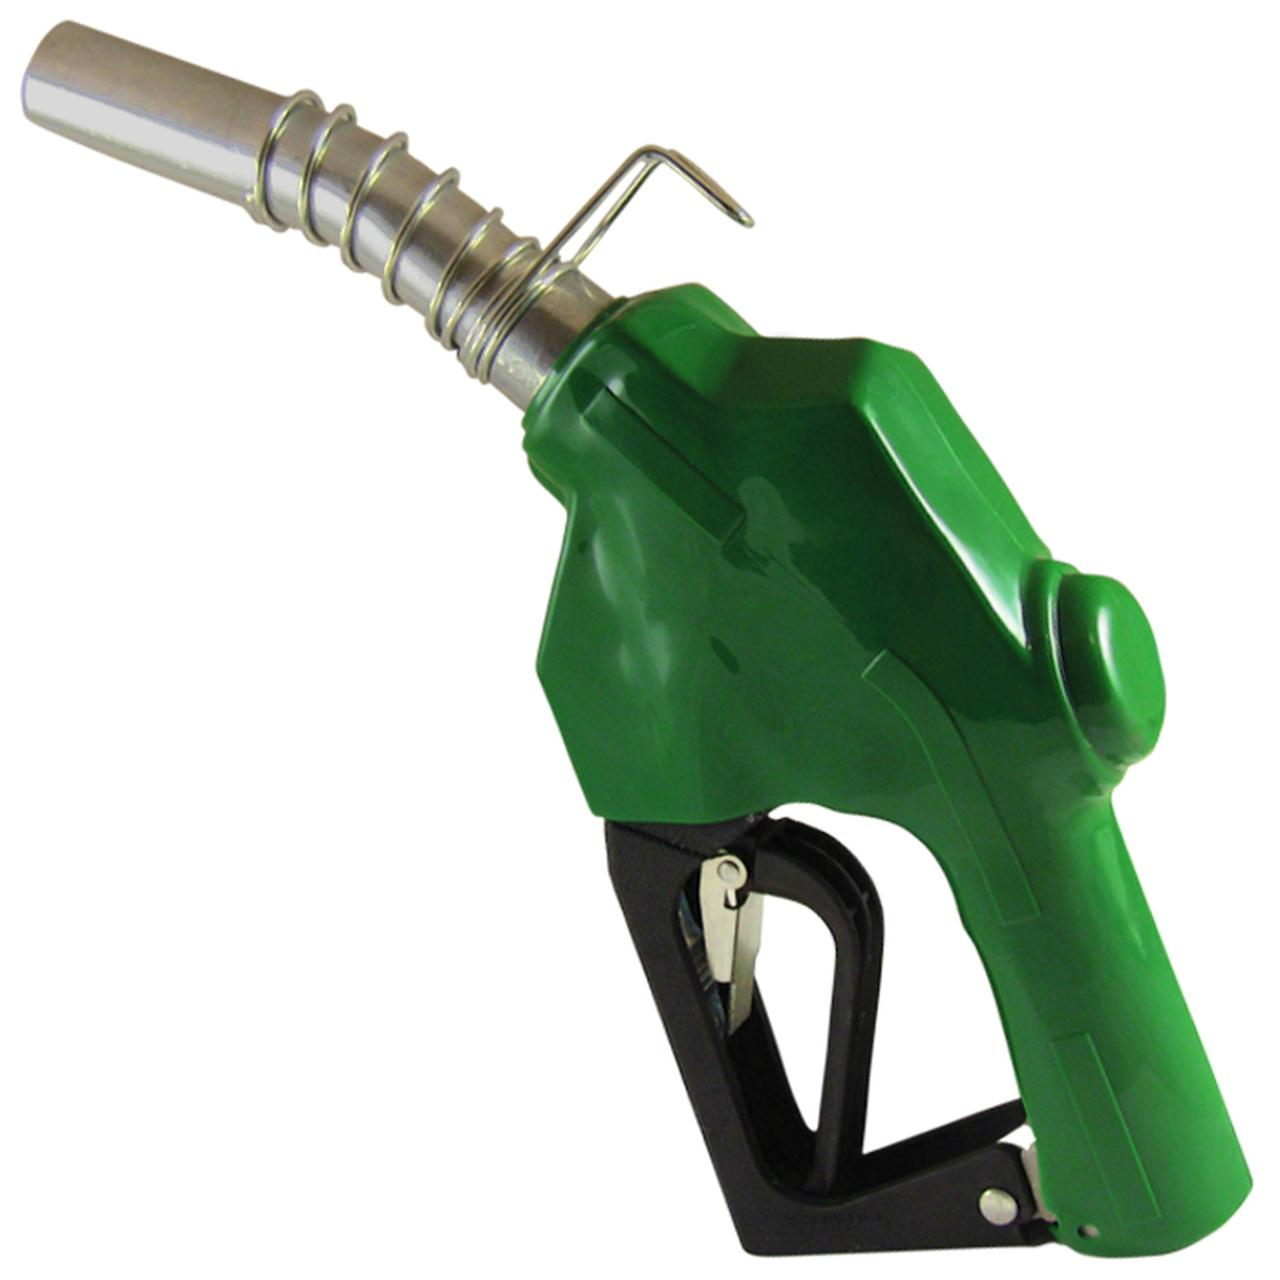 New Fuel transport charges review 24/06/2020